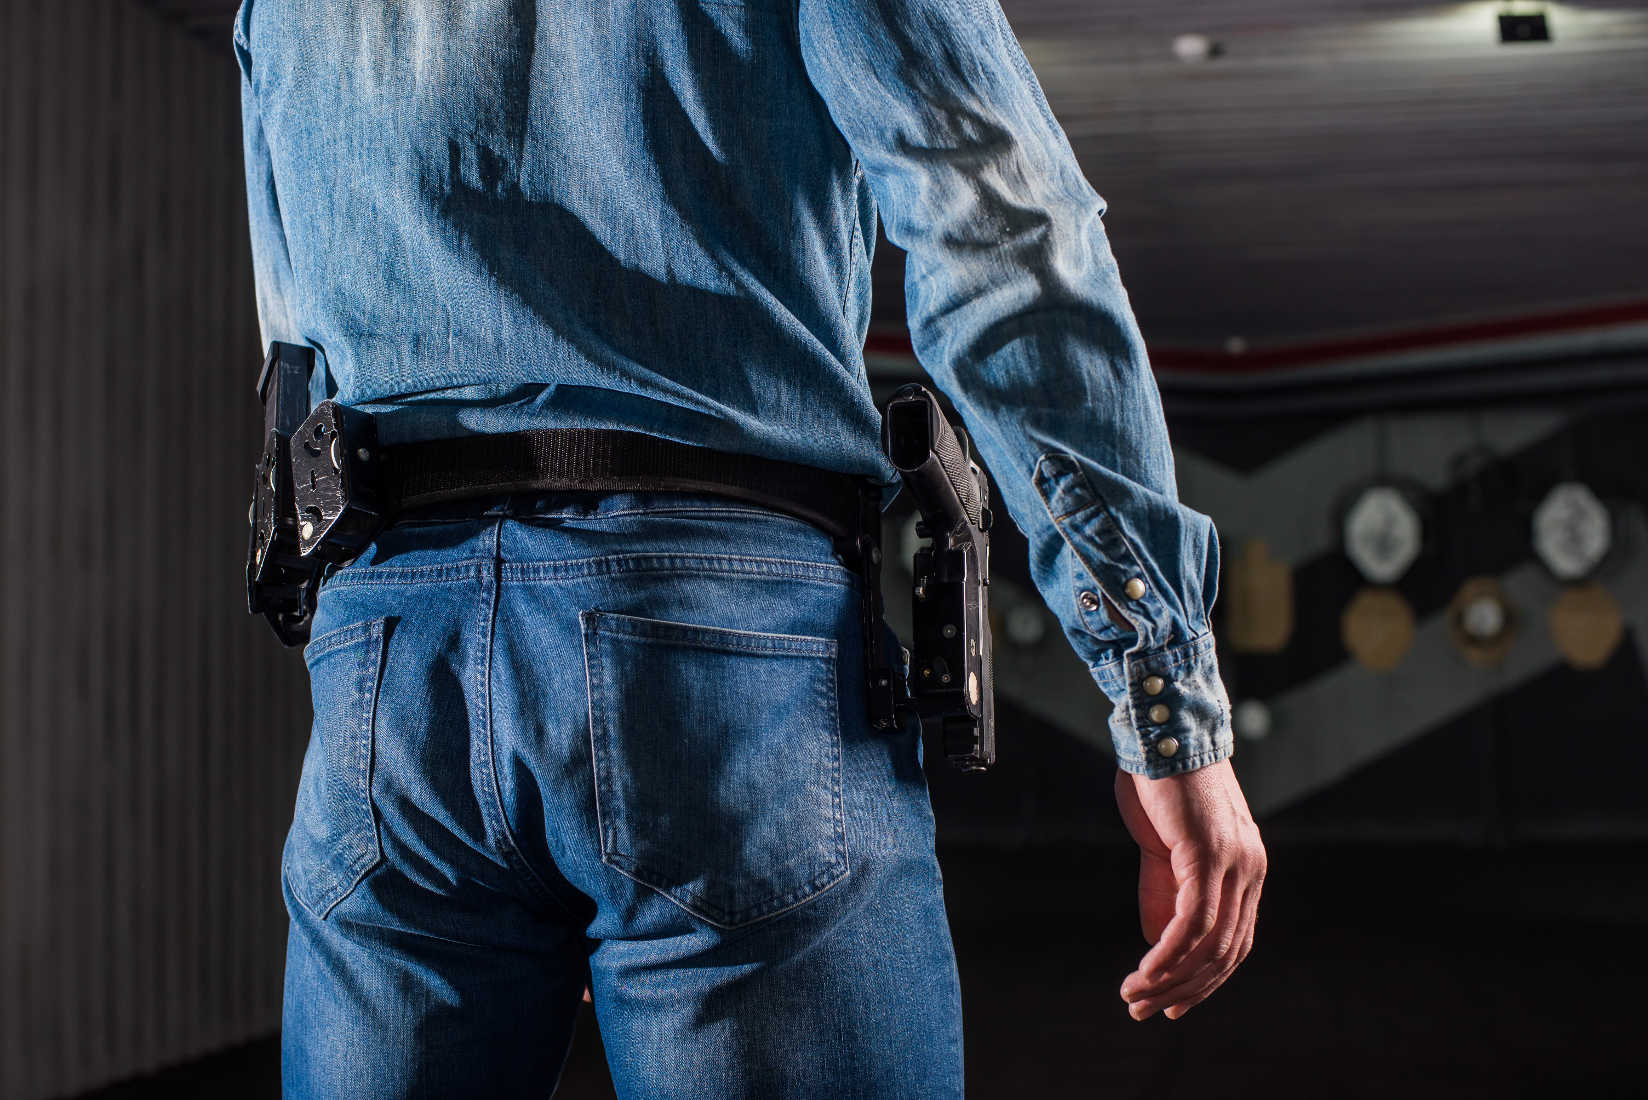 Second Amendment Protects Right to Open Carry, Federal Appeals Court Rules